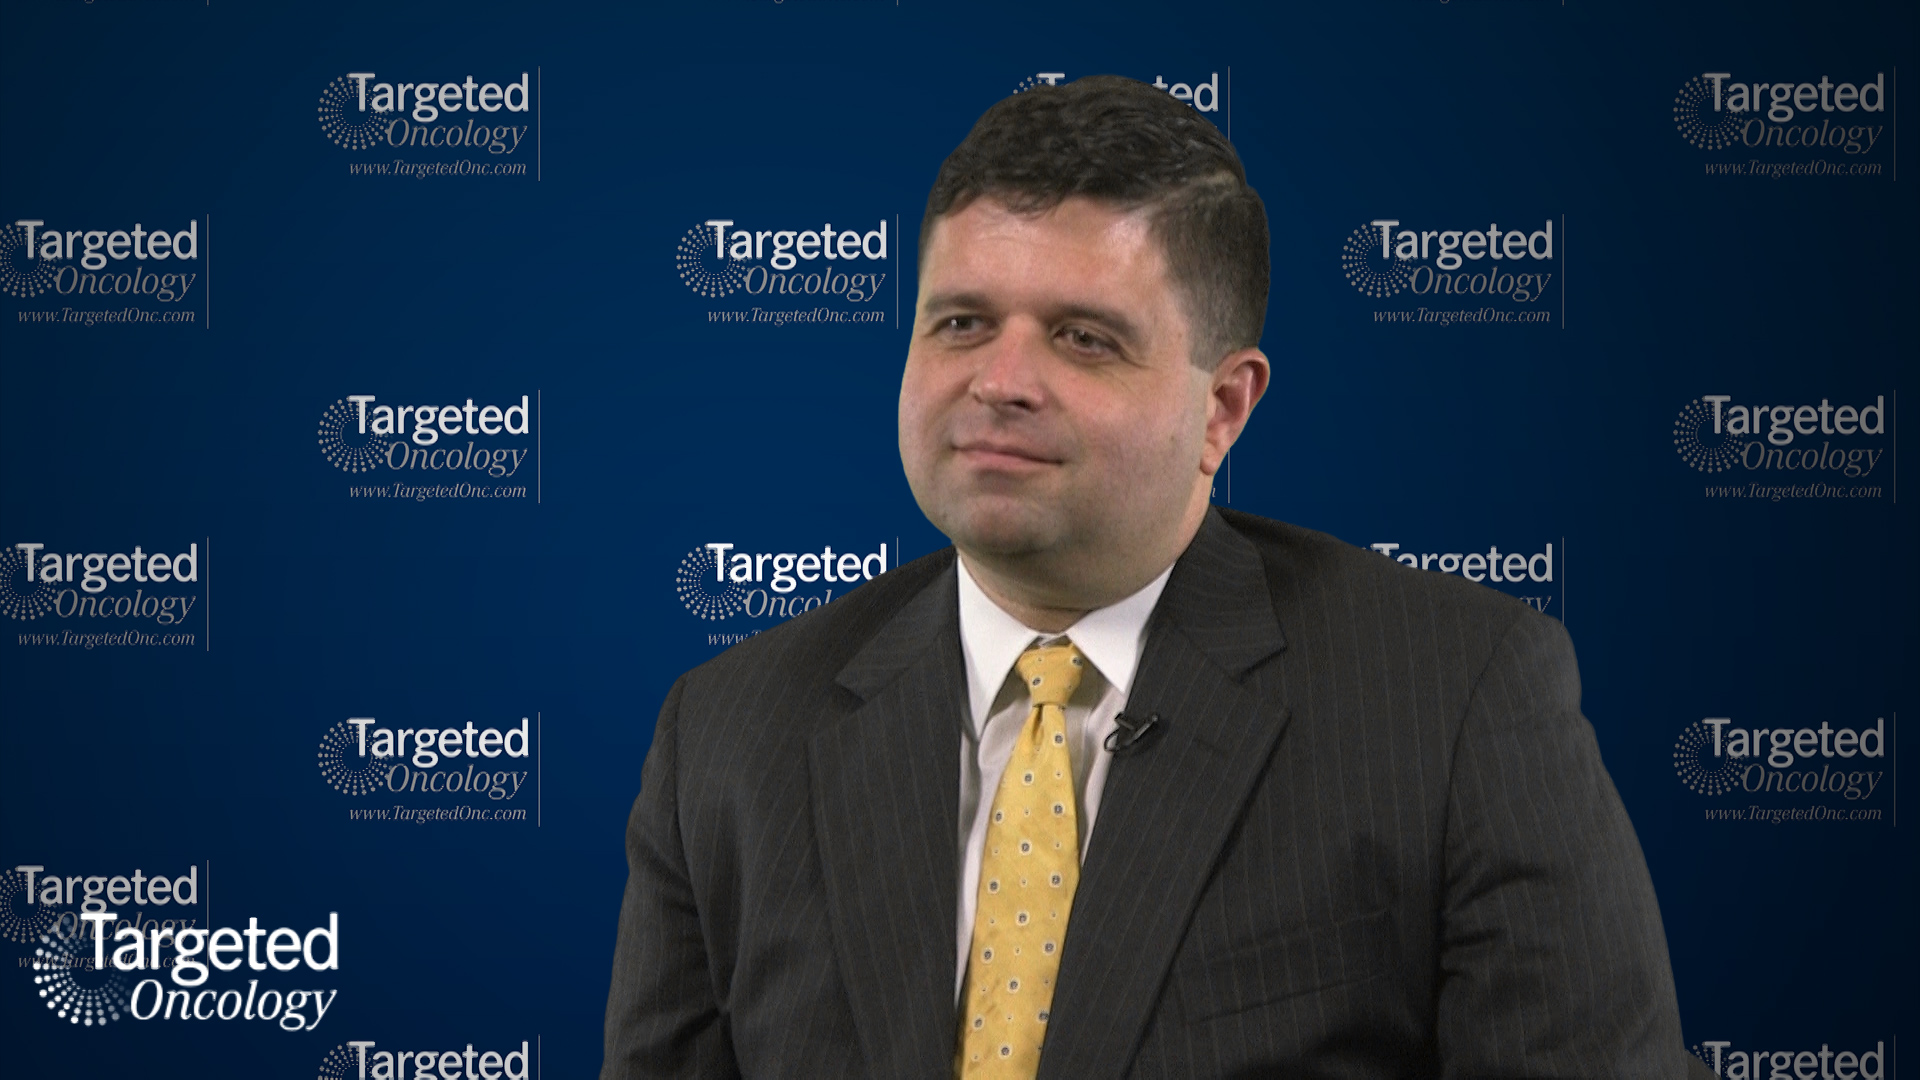 Use of Olaratumab for LMS Metastatic to the Peritoneum and Lungs